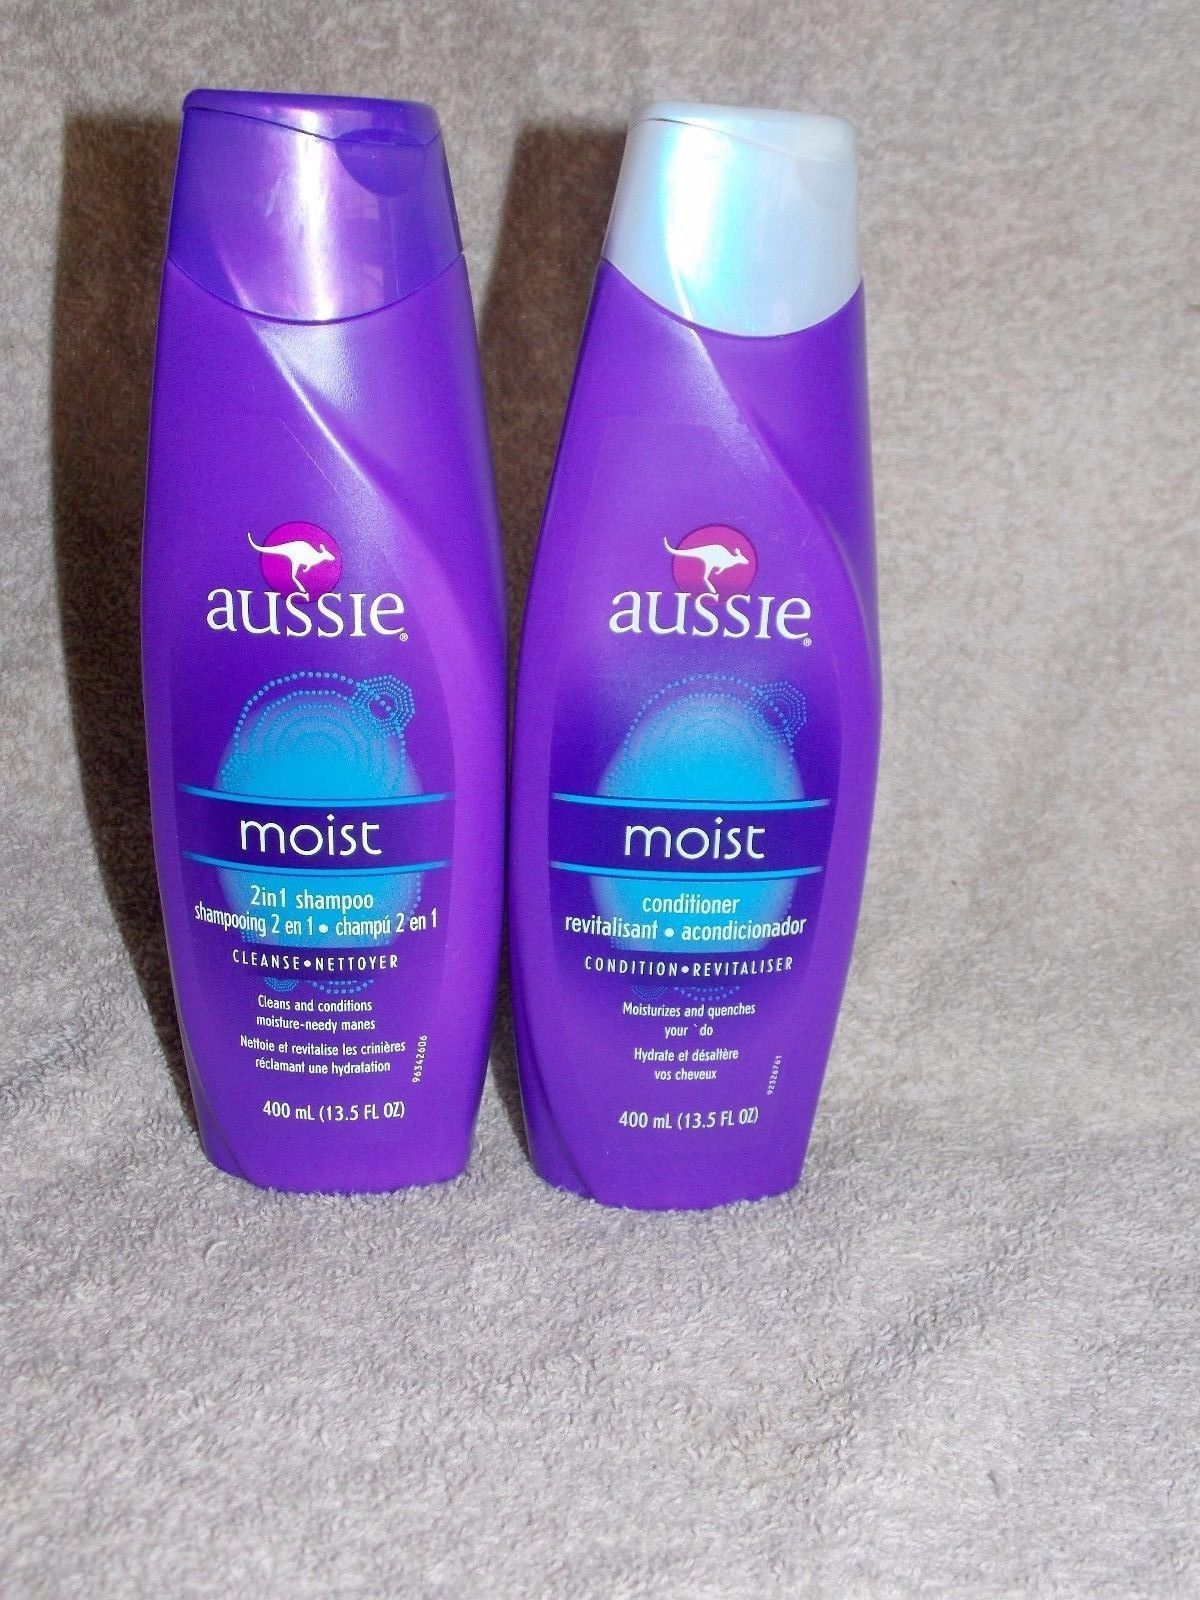 2 Aussie MOIST 2-in-1 Shampoo Cleanse & and 40 similar items. S l1600